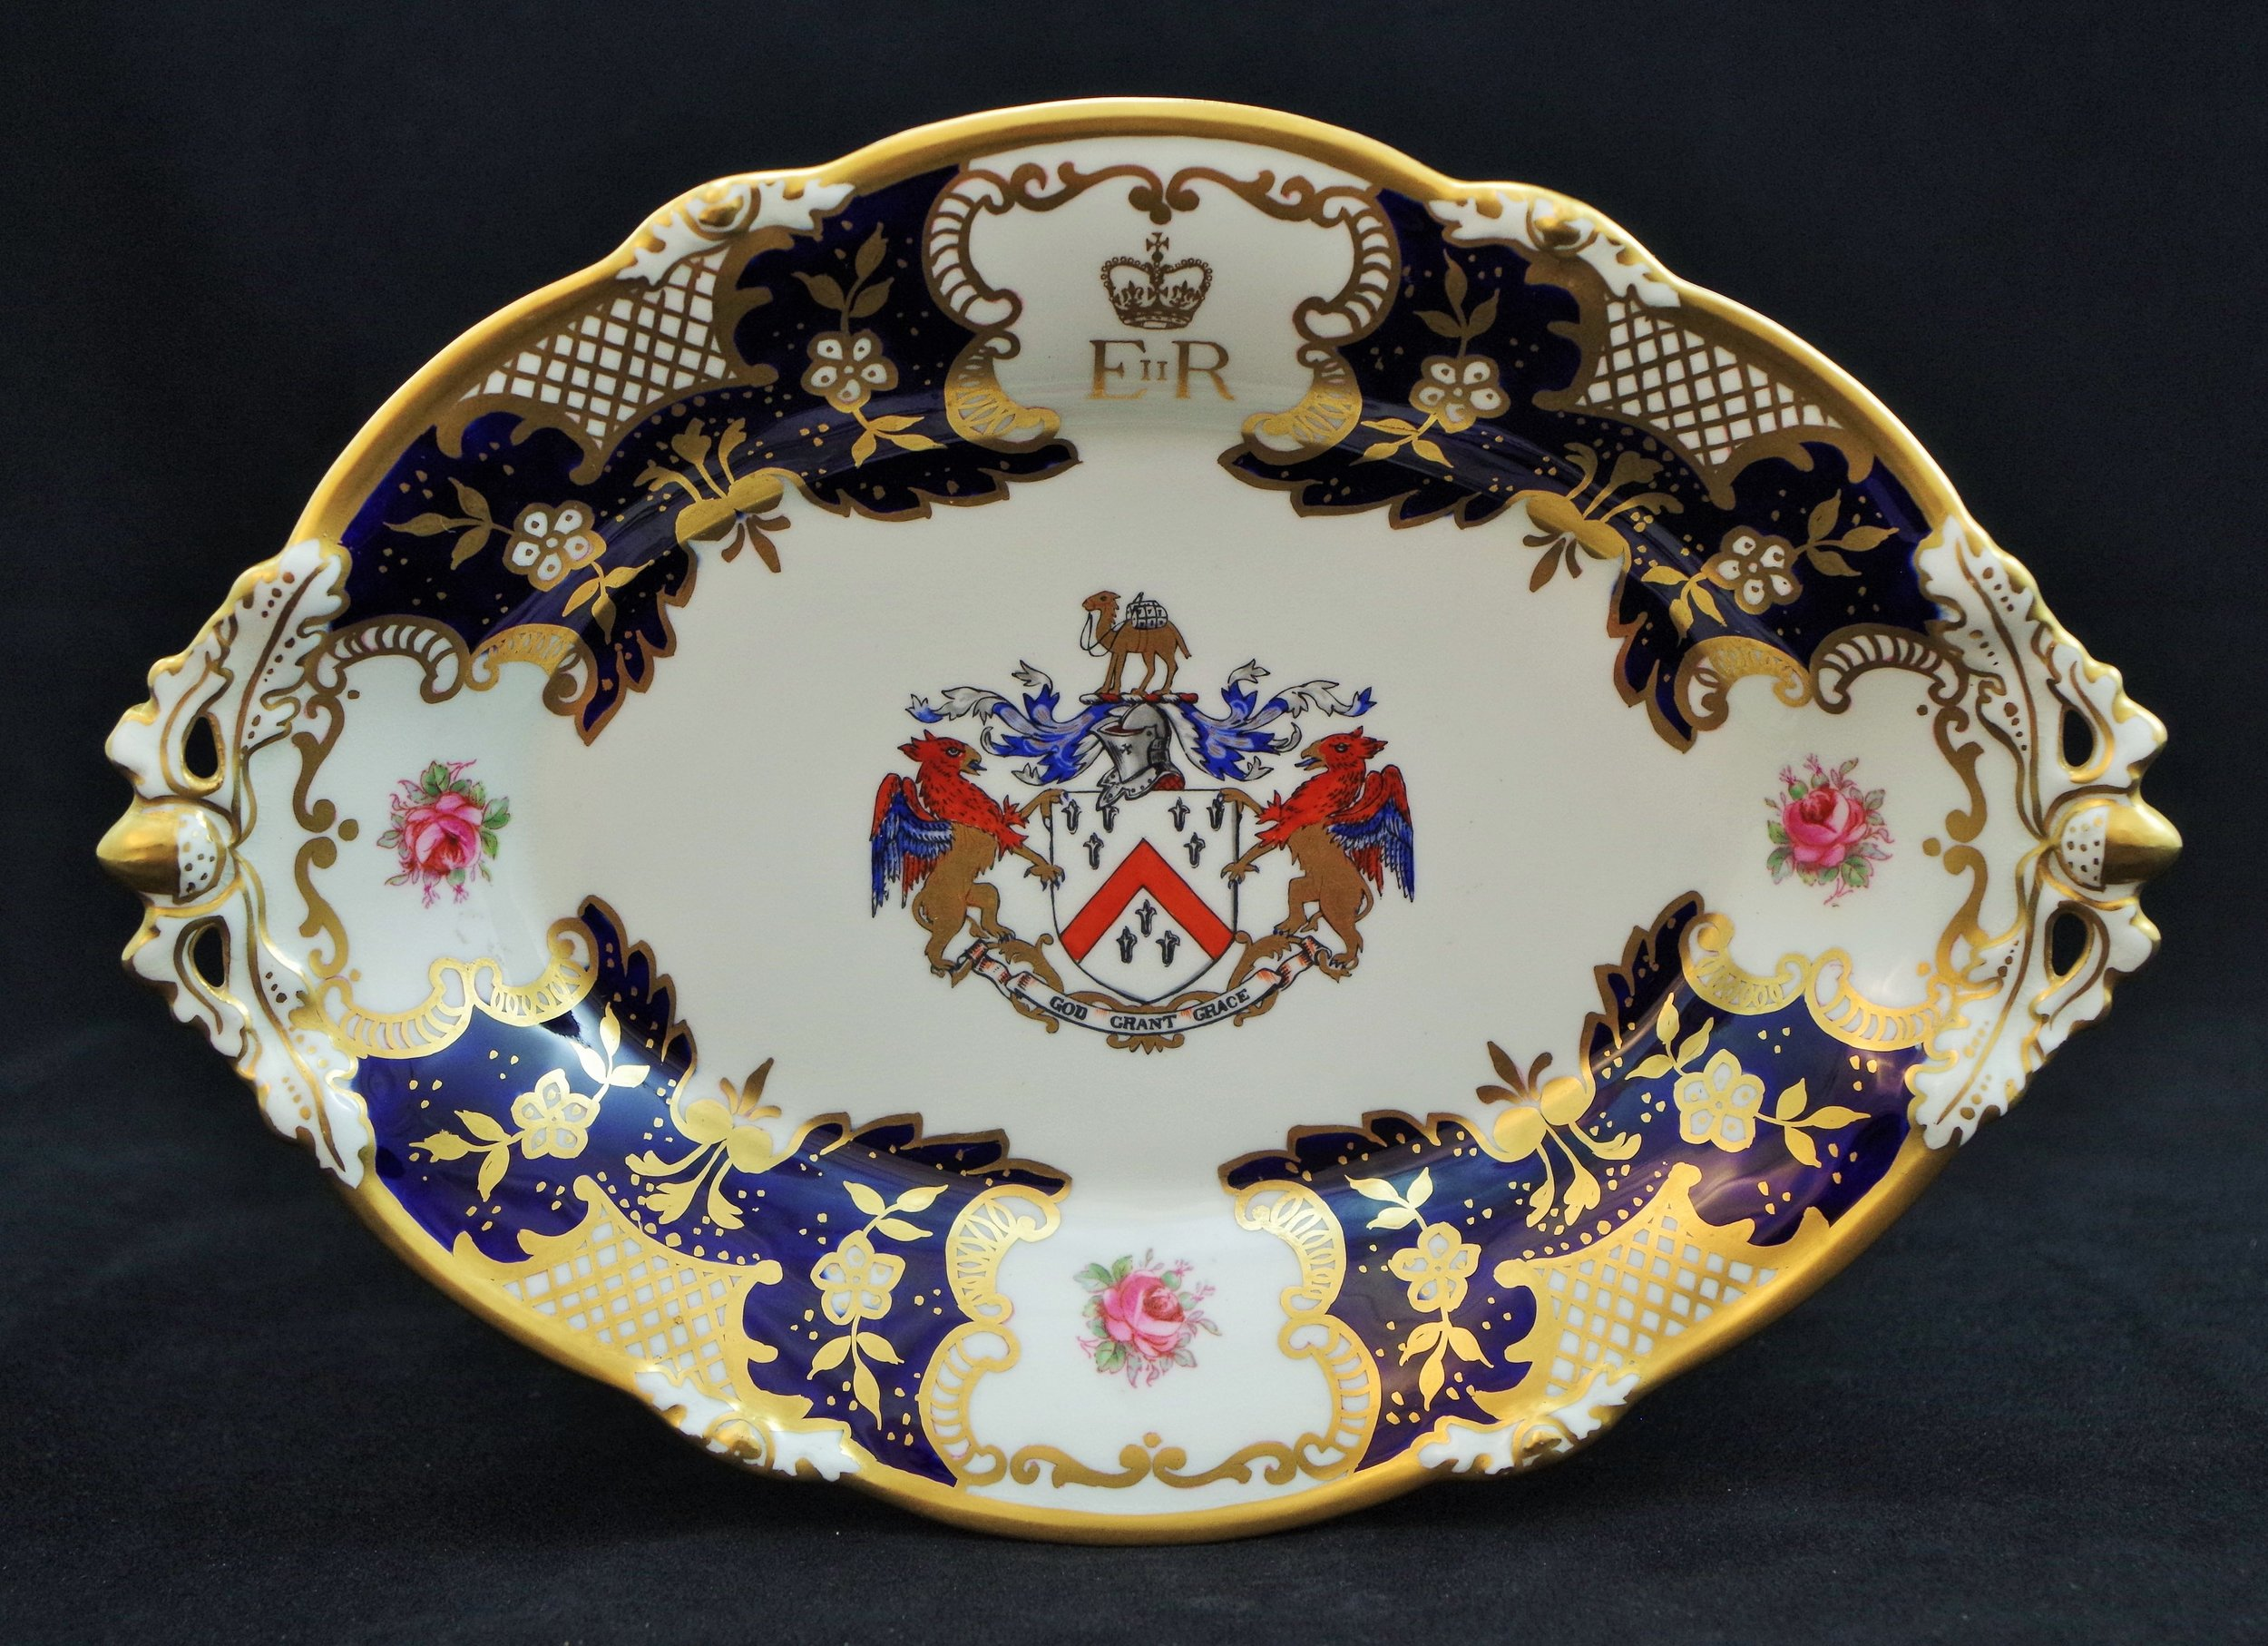 royal-crown-derby-cake-basket-1685-oval-the-worshipful-company-of-grocers-A1043